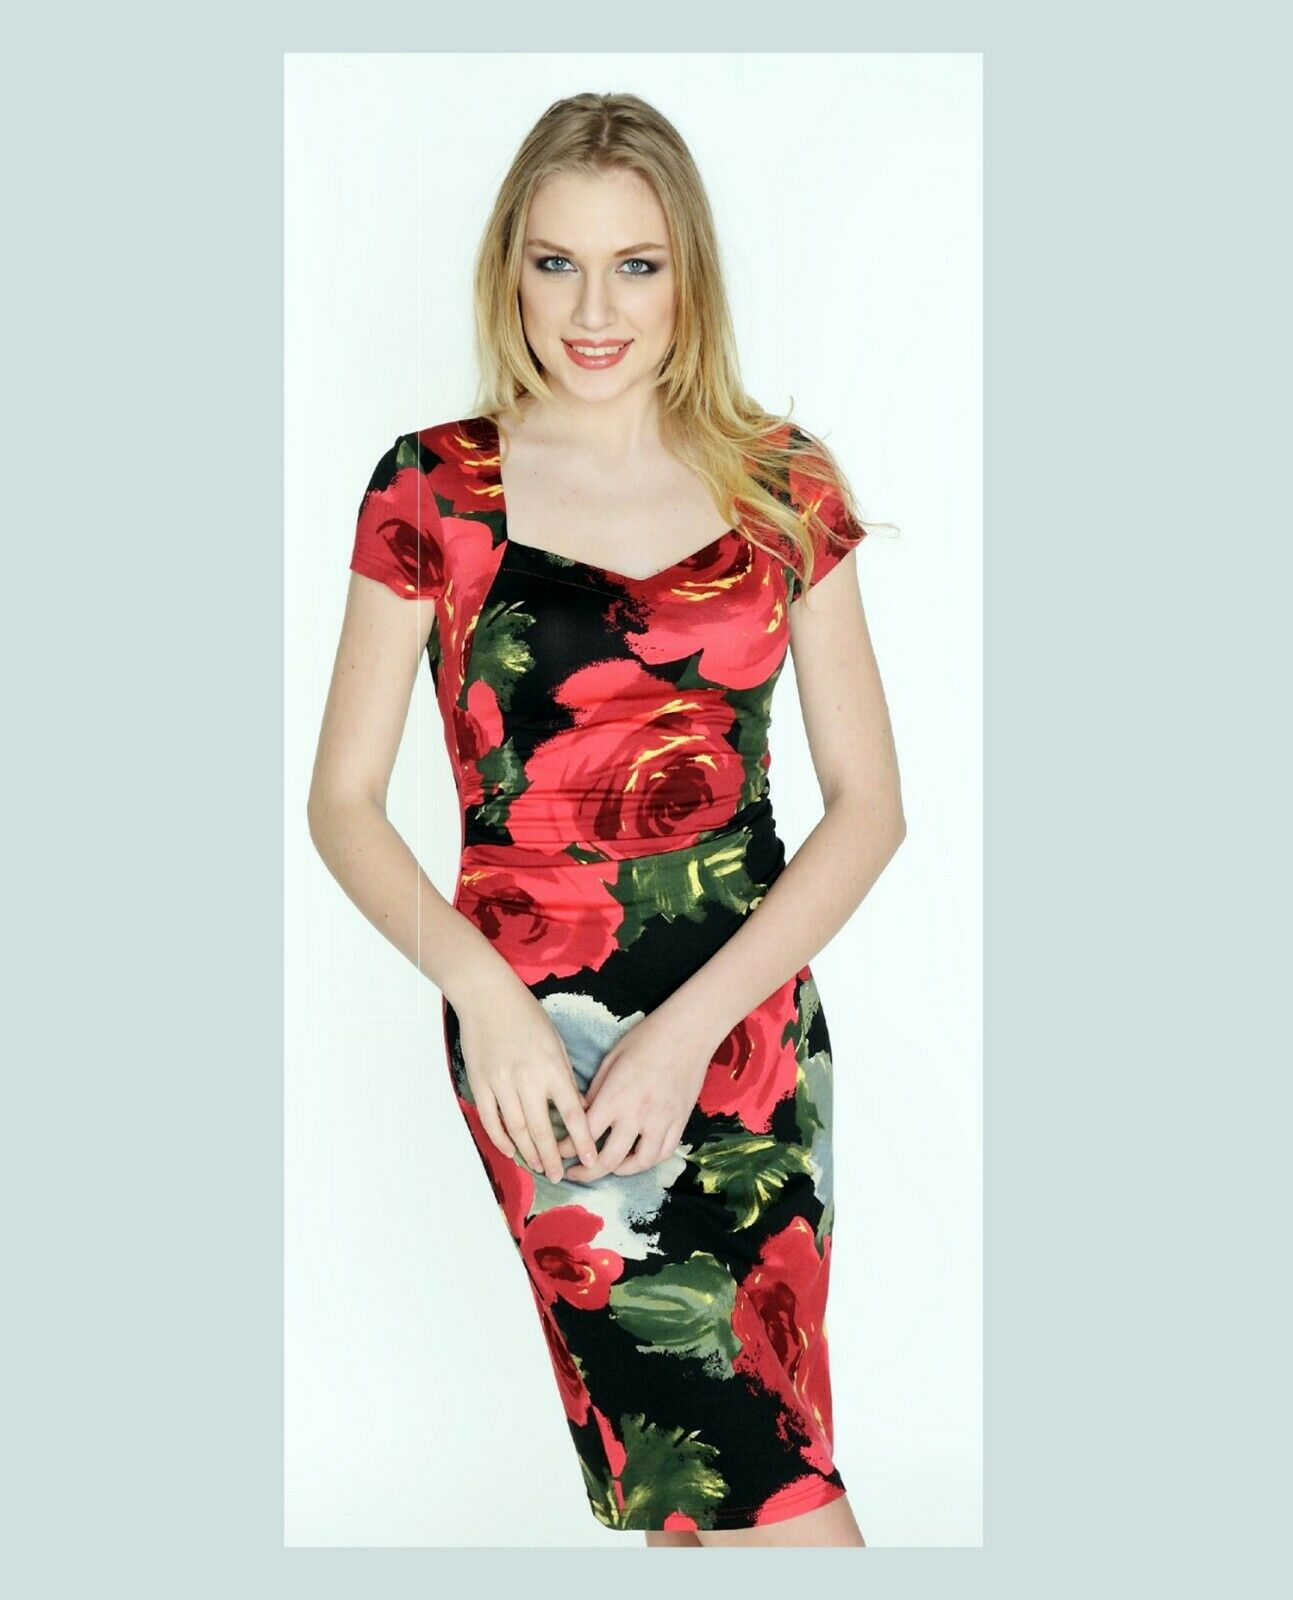 PARTY DRESS SHORT SLEEVES Farbeful Summer Wedding Stretch Bodycon Made In Europe